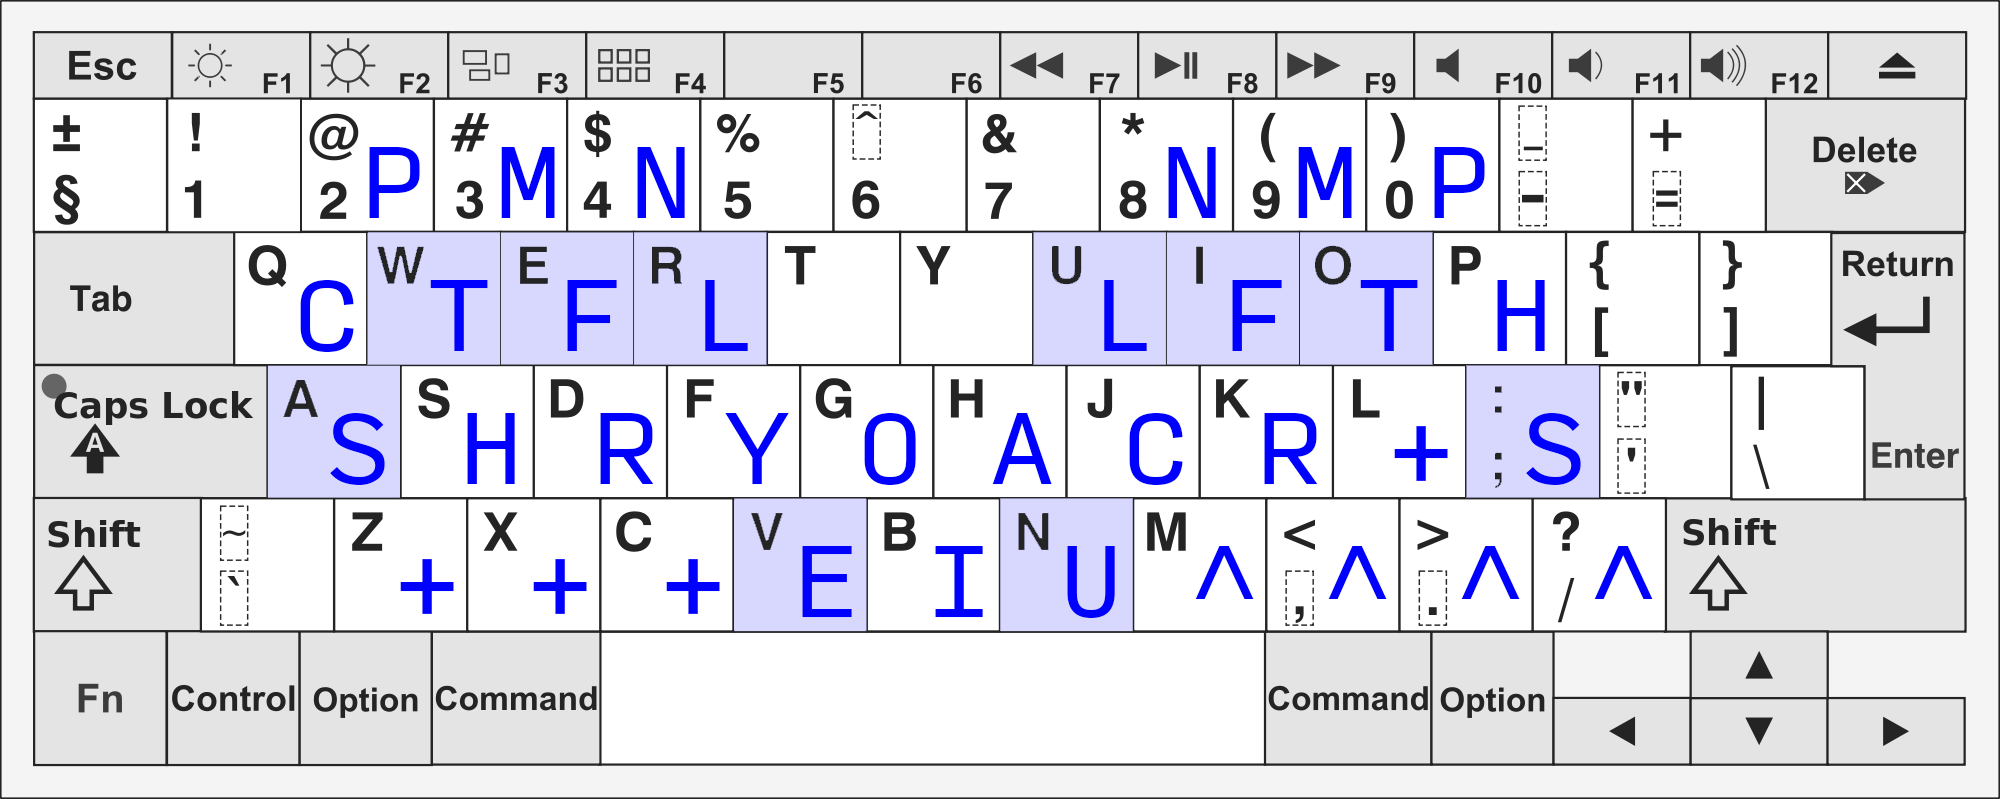 In the QWERTY to palan mapping, S is a, C is q, P is 2, T is w, H is s, cross is z, x, and c, N is 4, L is r, Y is f, O is g, E is v, A is h, U is n, I is b, point is m, comma, period, and slash, L is u, C is j, N is 8, F is i, R is k, M is 9, T is o, the right cross is l, P is 0, S is semicolon, and H is p.